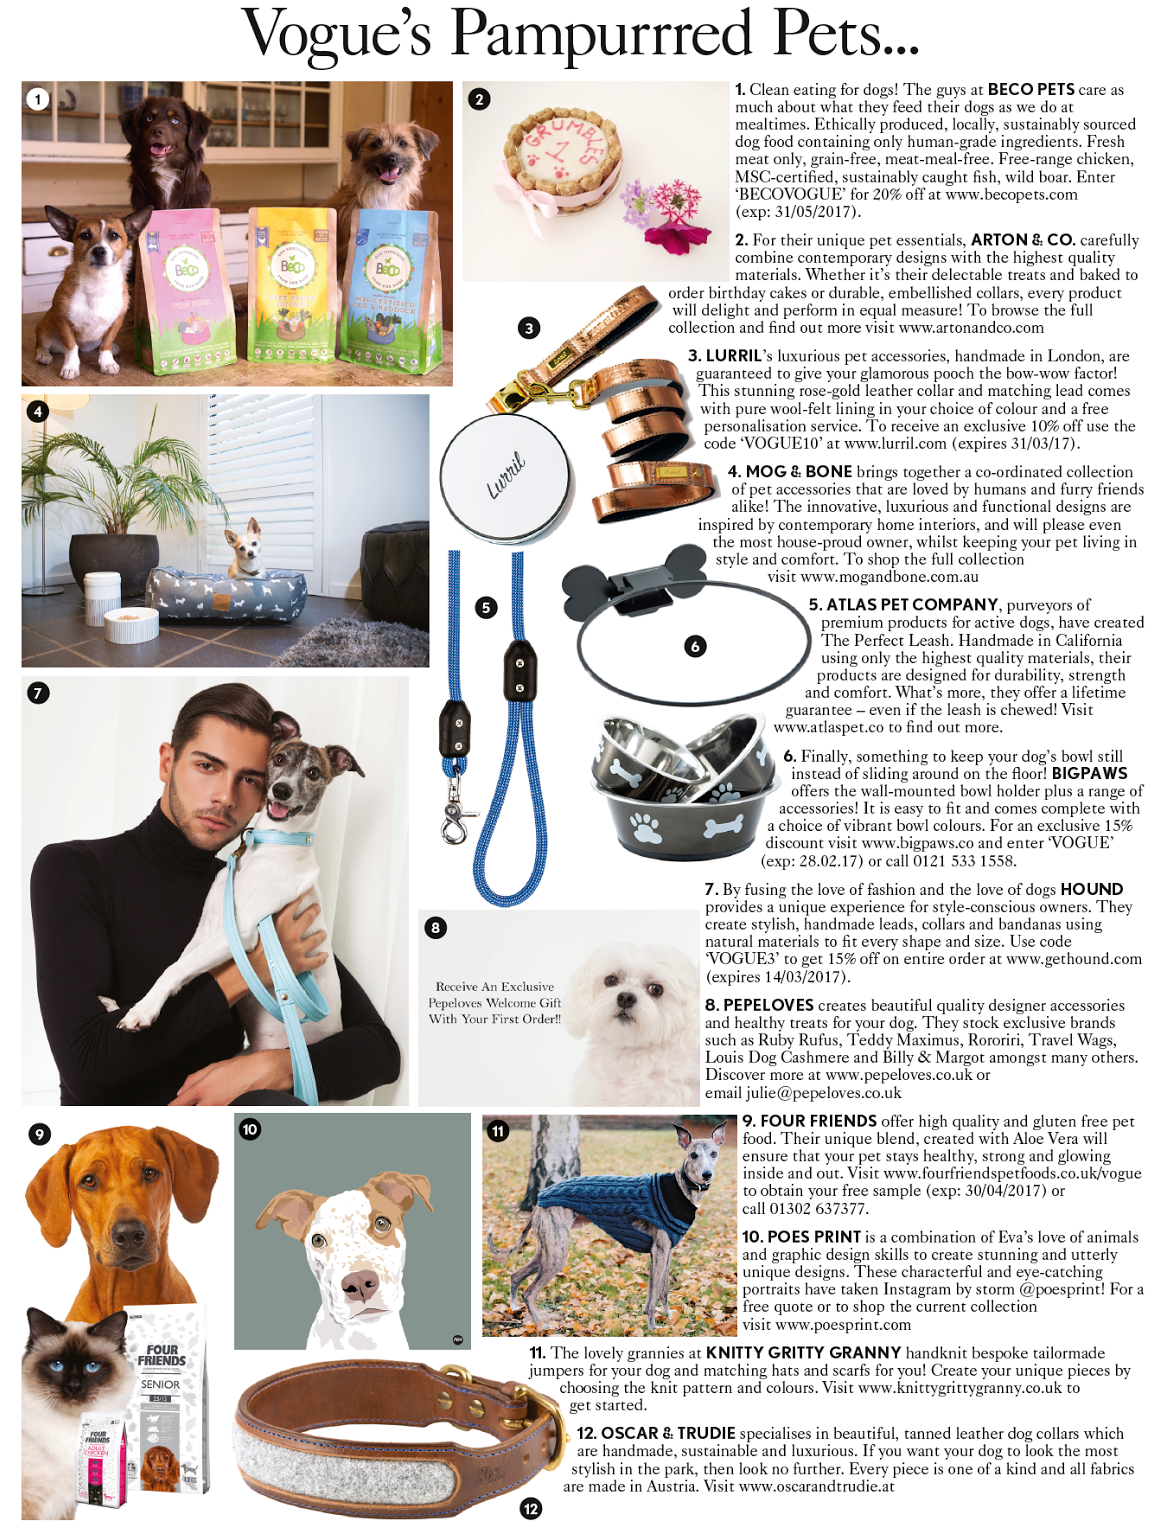 vogue magazine atlas pet company lifetime leash featured in